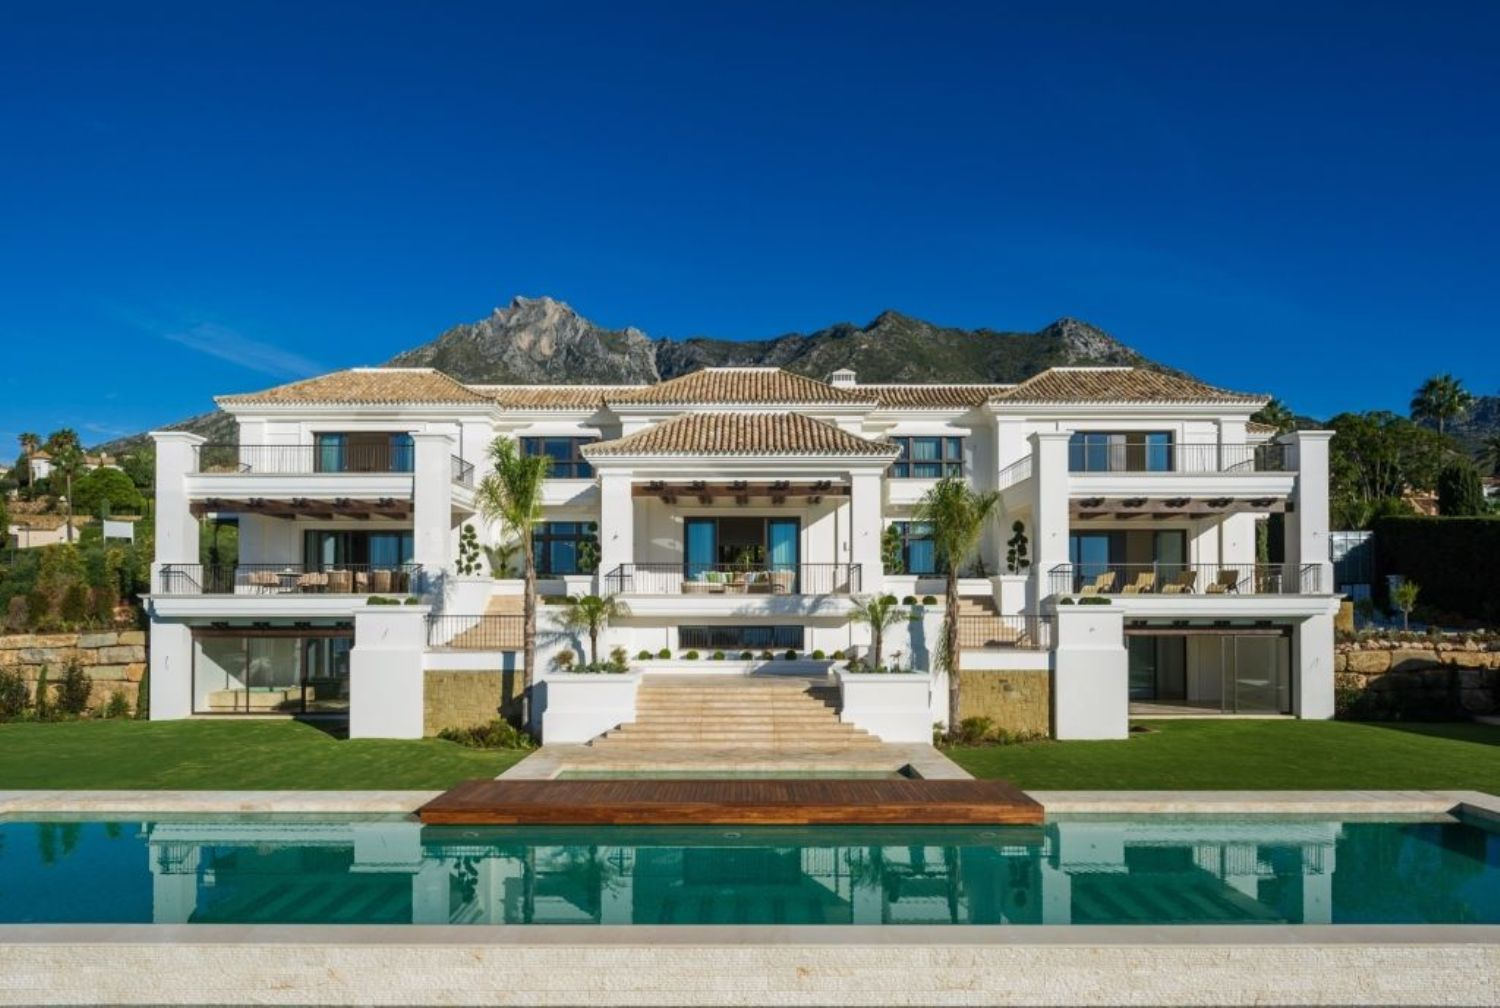 Luxury homes in Spain for sale: villas and apartments — idealista